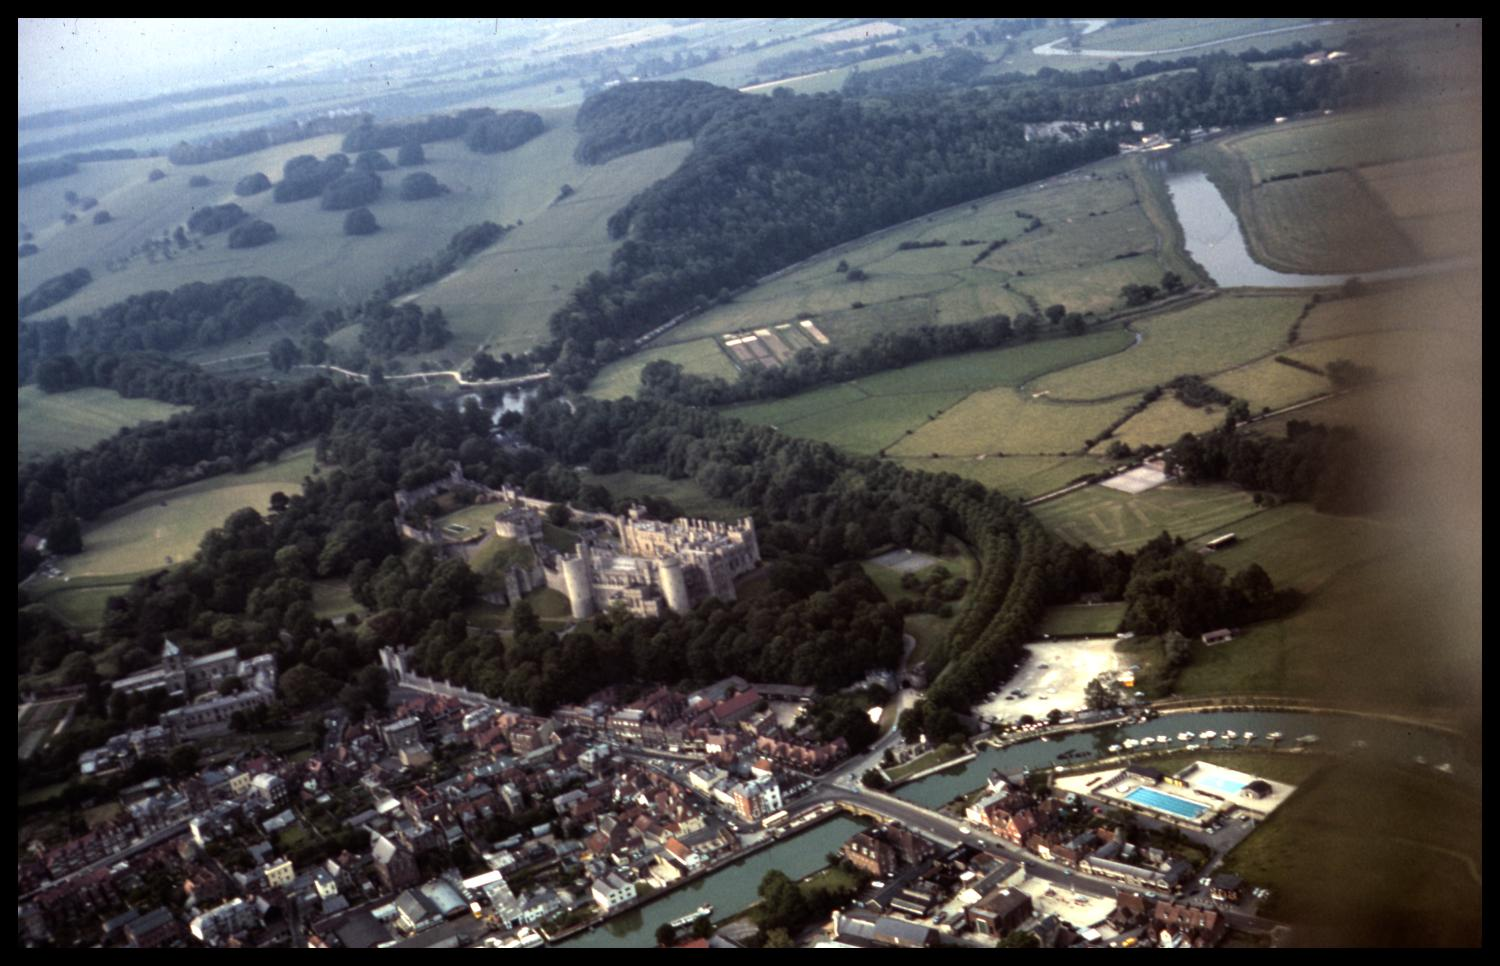 [Aerial View of Arundel]                                                                                                      [Sequence #]: 1 of 1